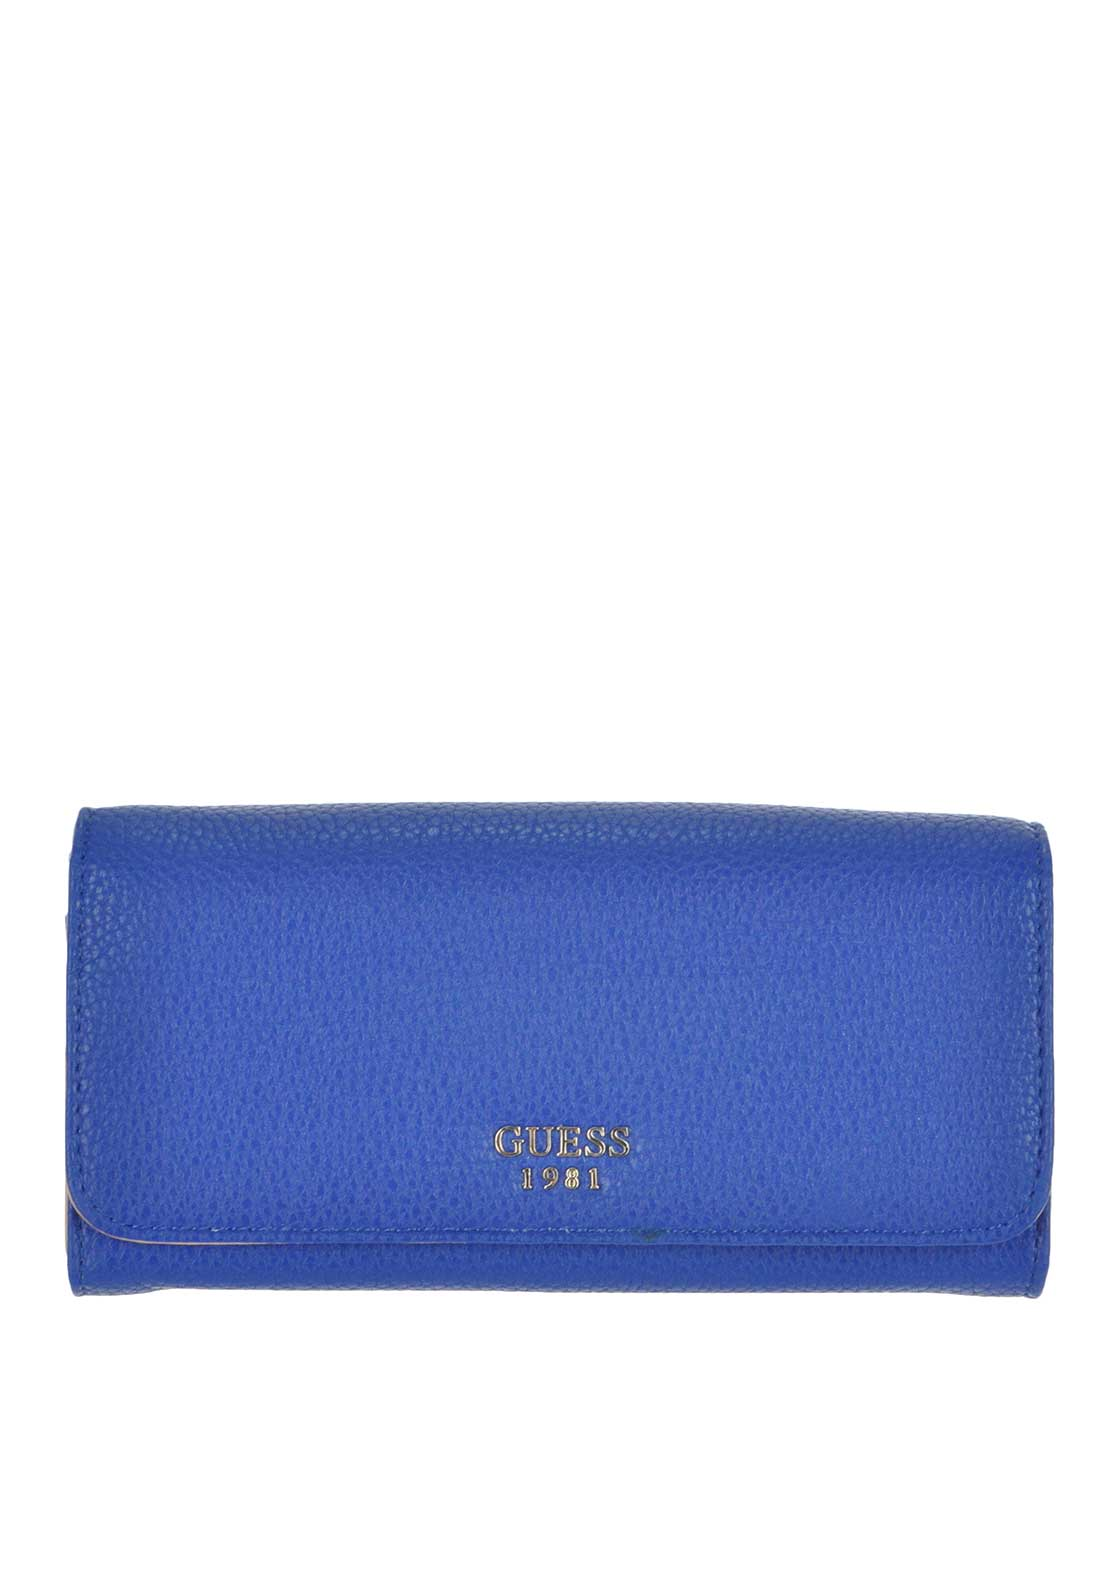 Guess Cate Large Flap Wallet, Blue